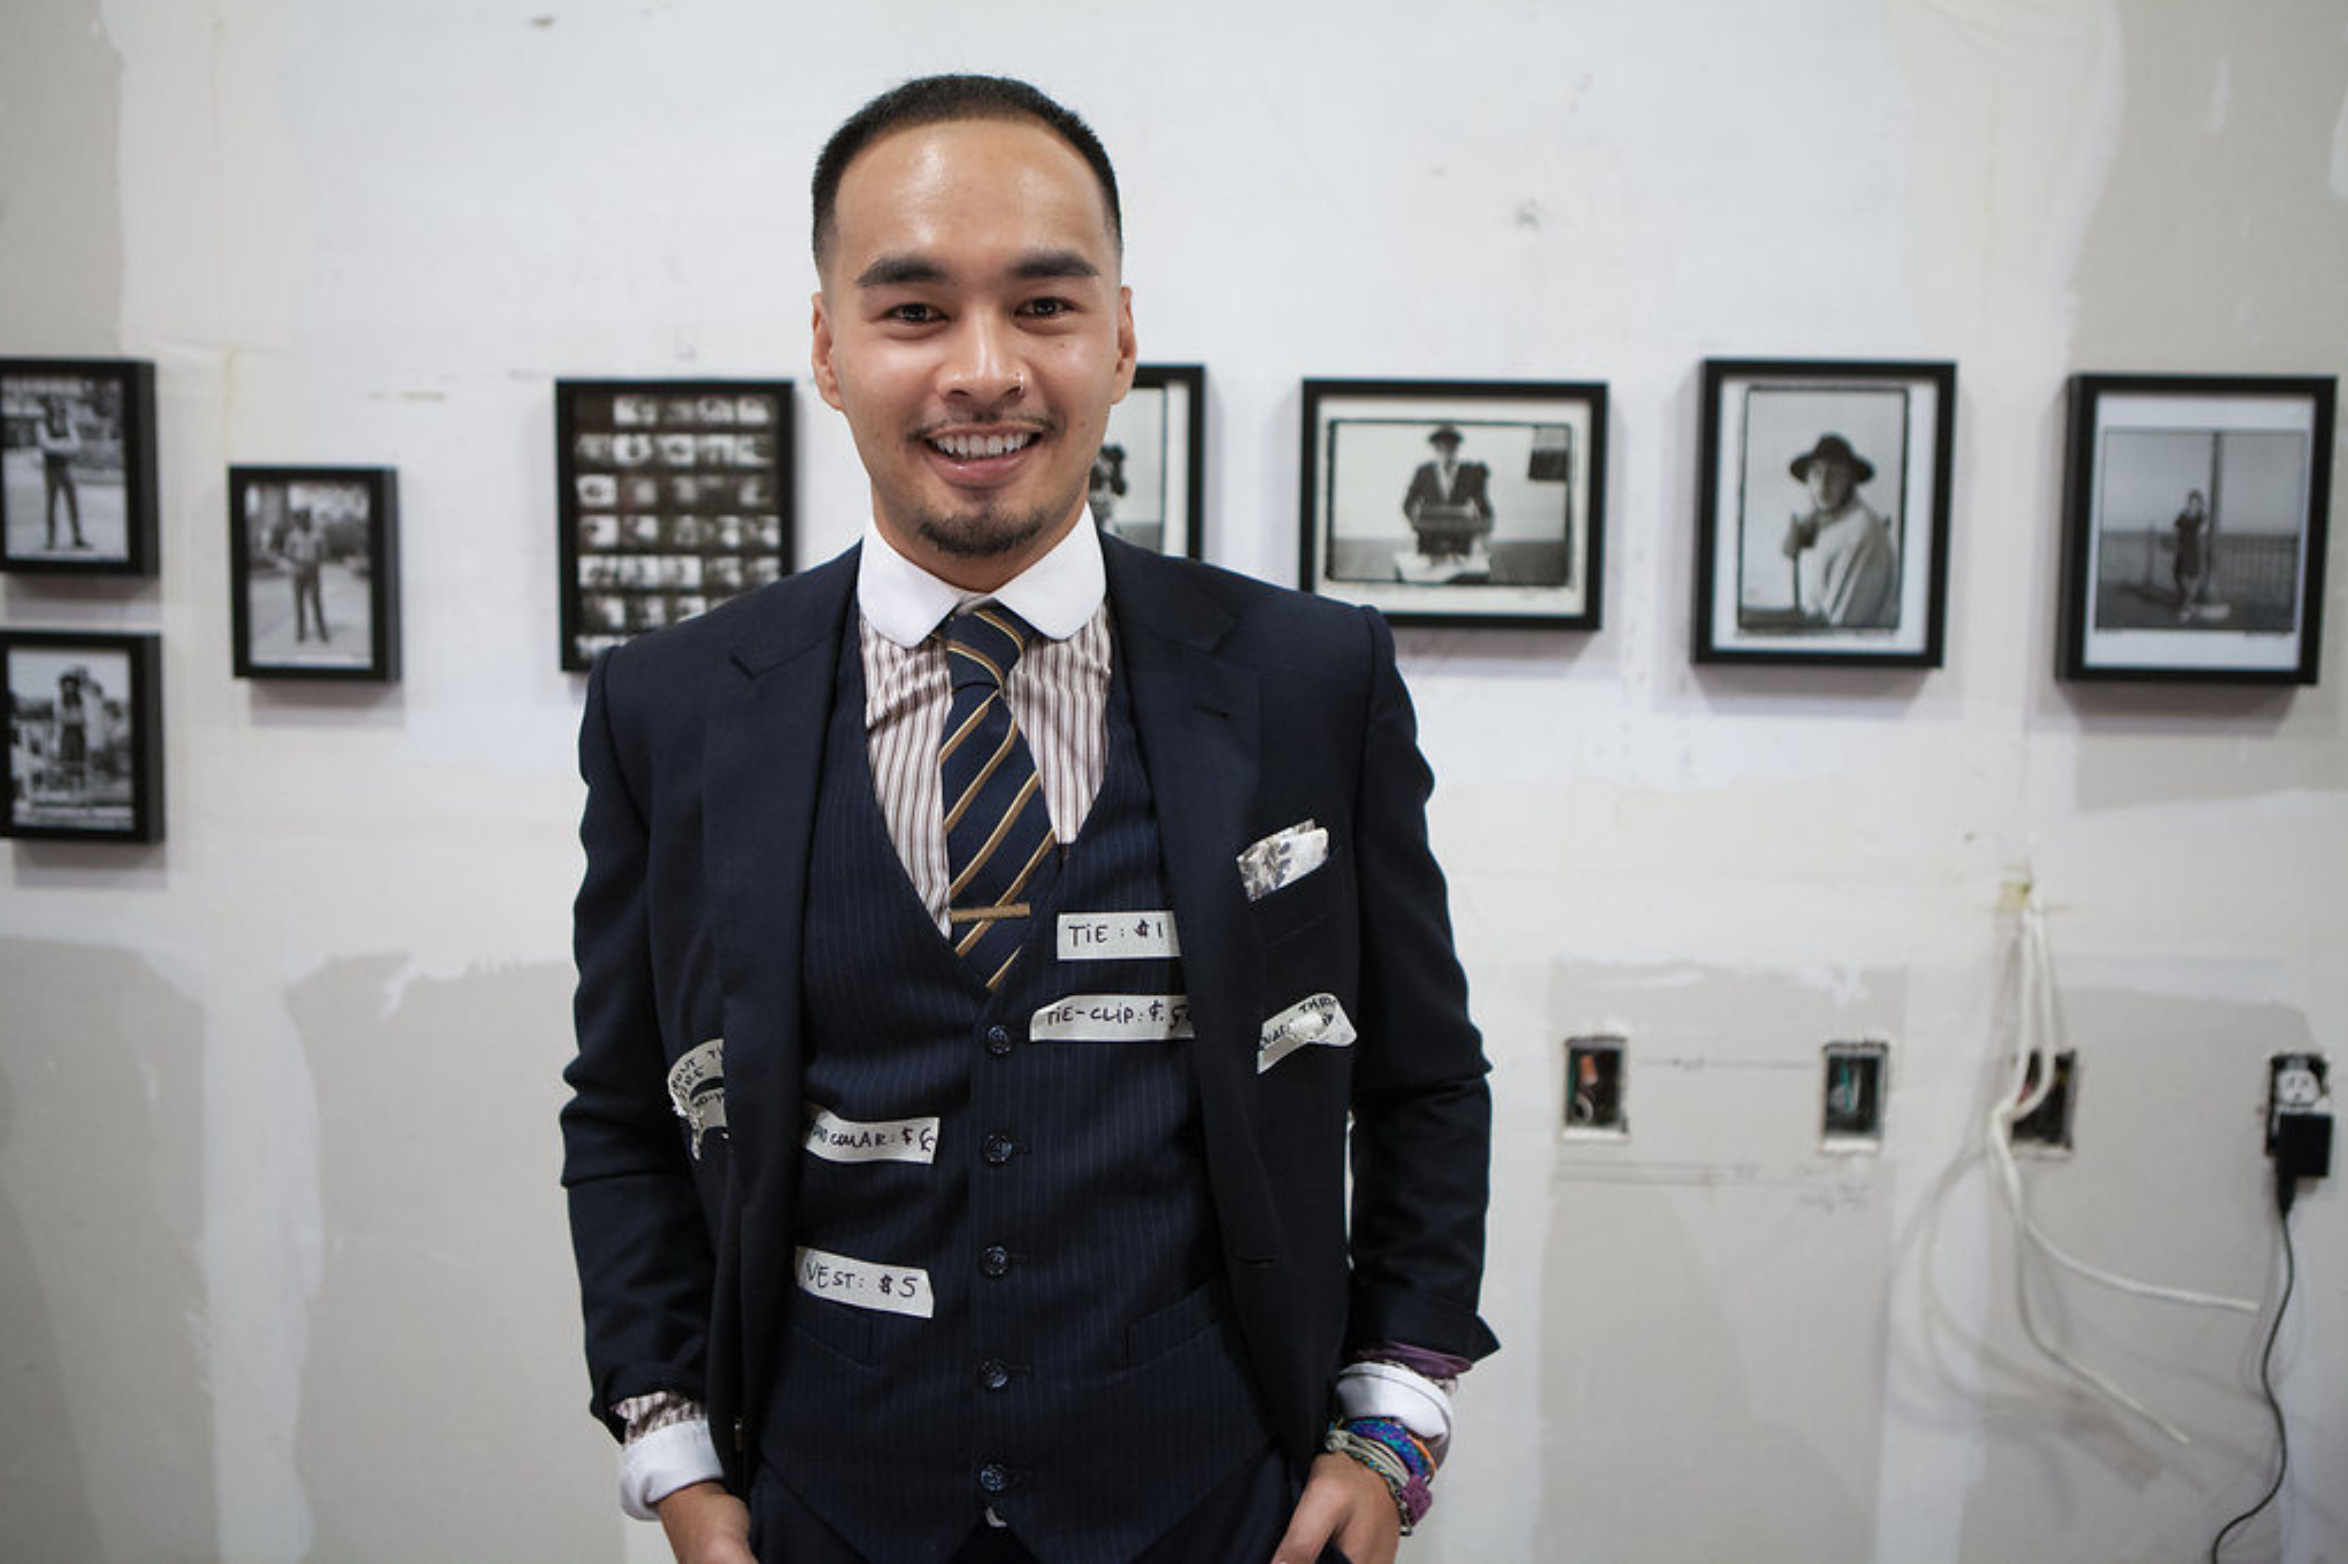 Portrait of man standing in front of body of photography work